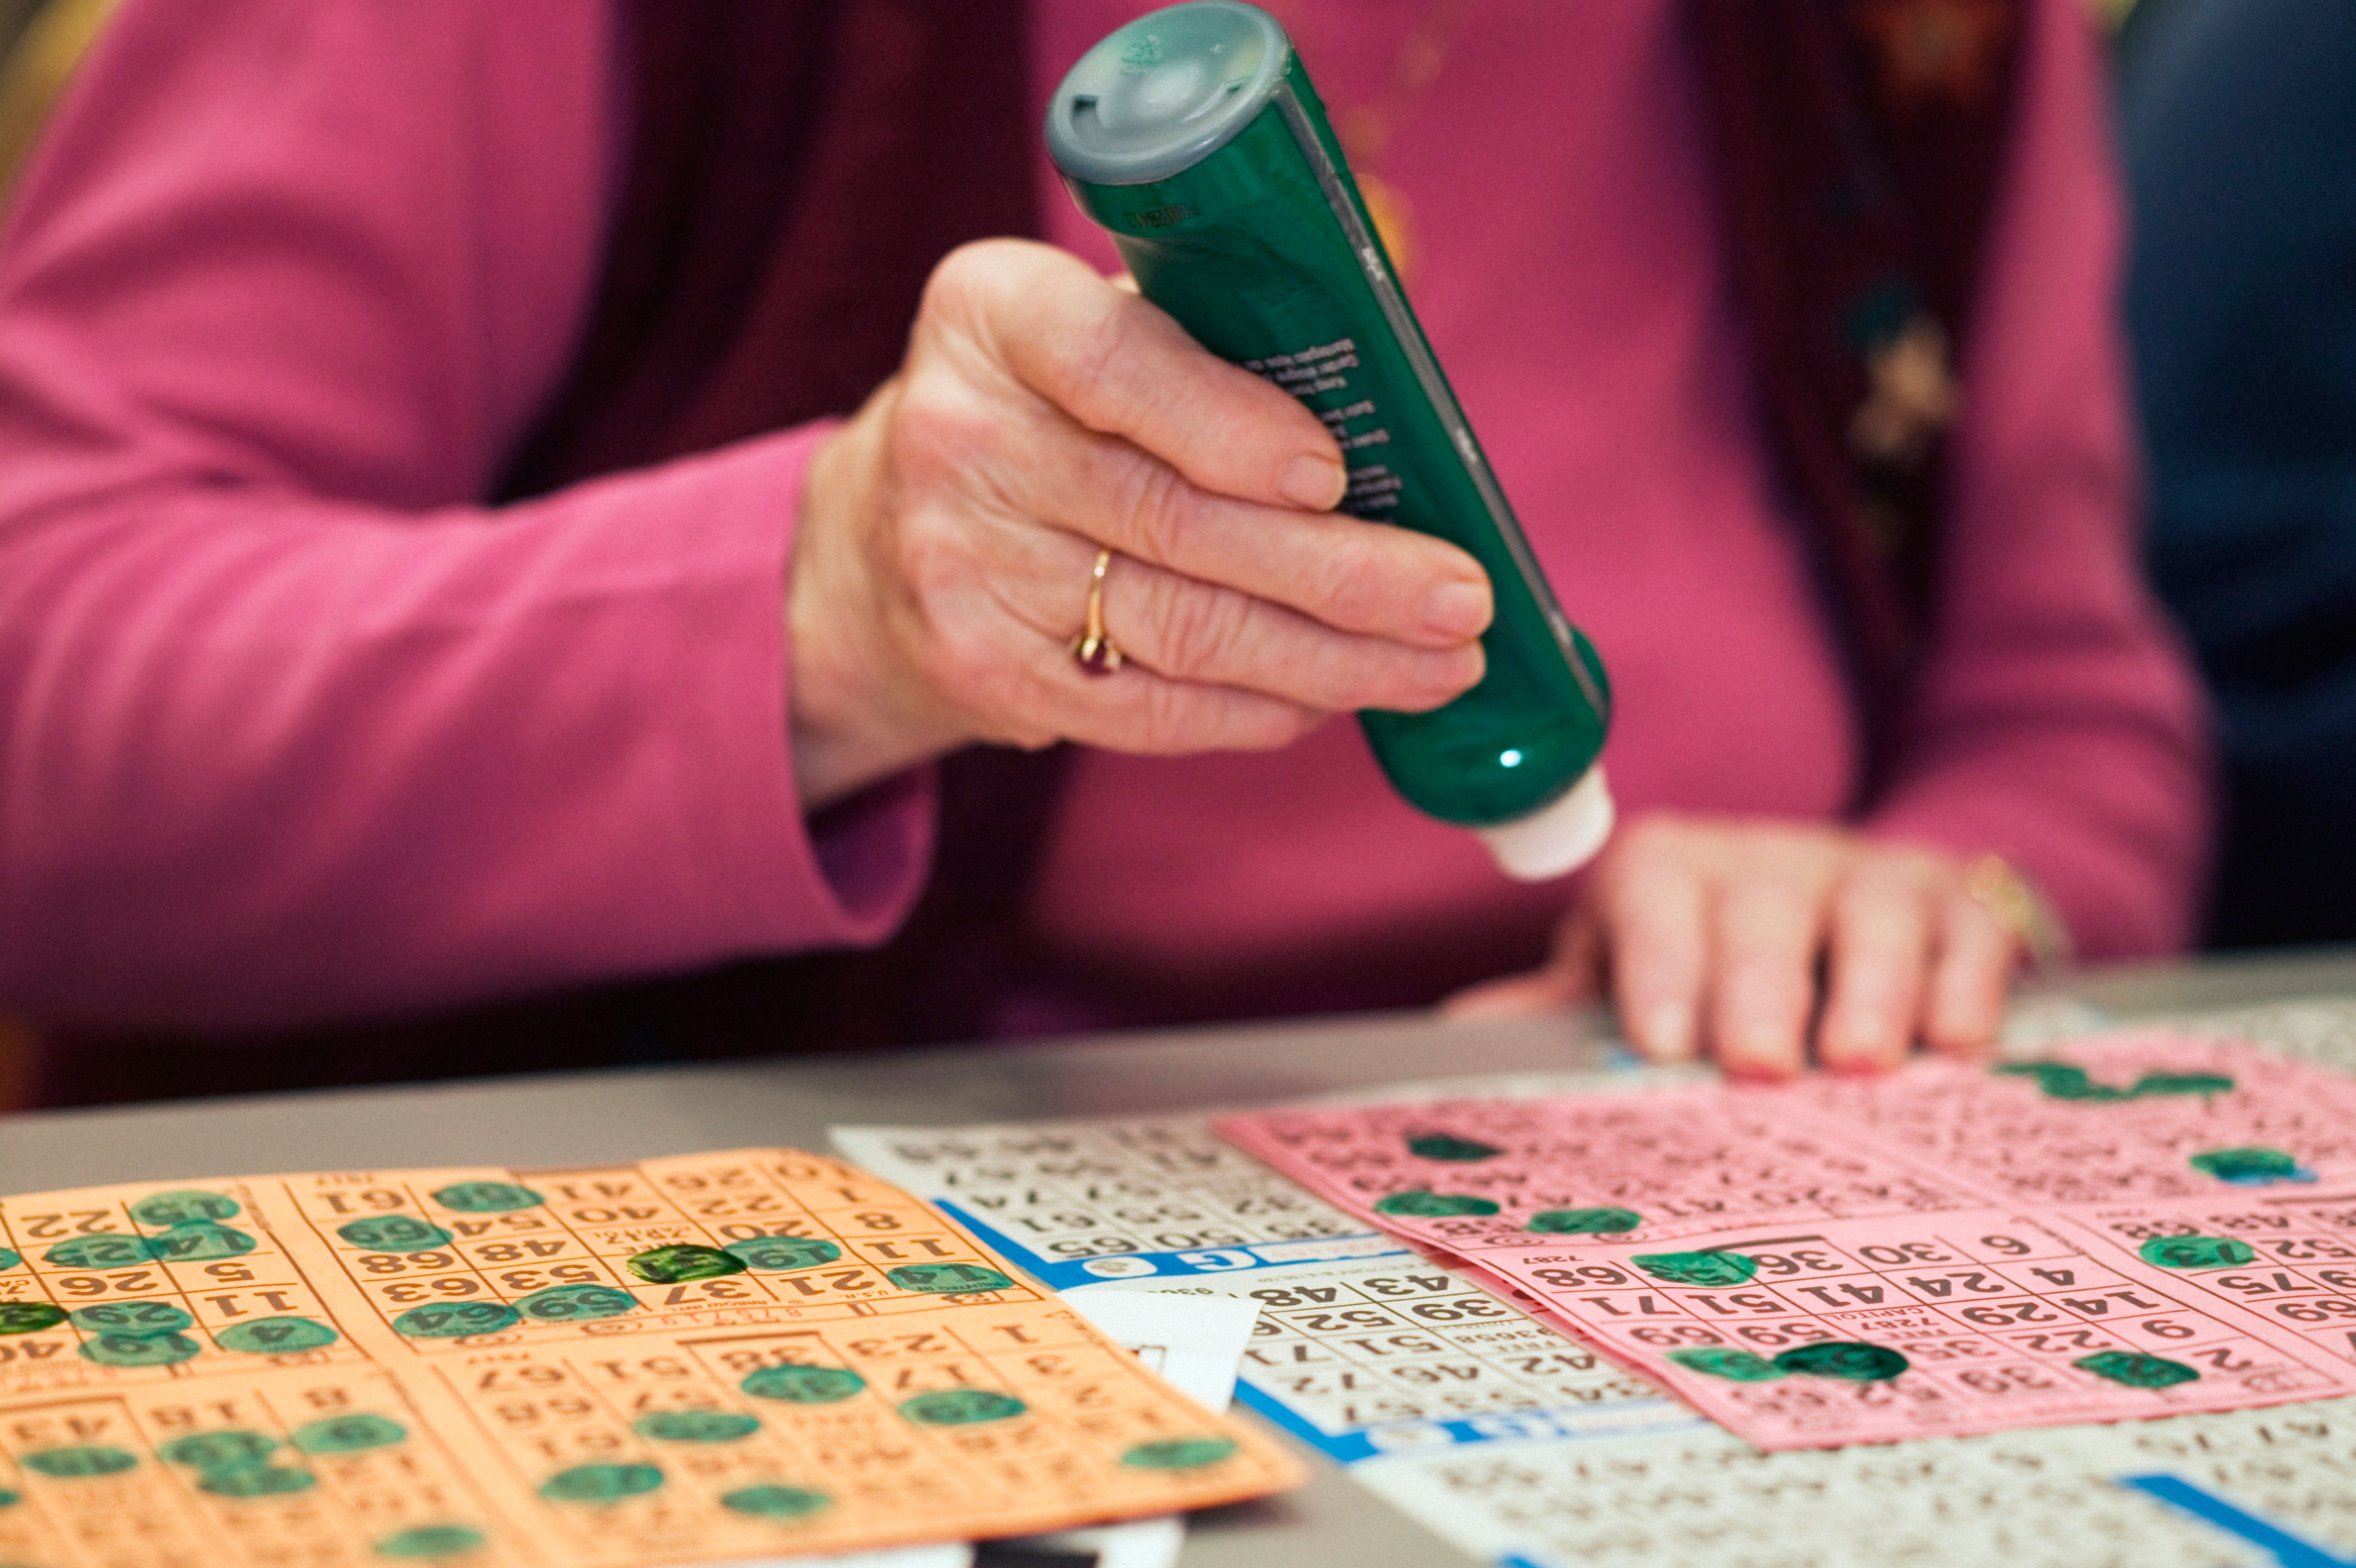 Katherine paid £90 for six bingo tickets but the event didn't take place and she wasn't given a refund